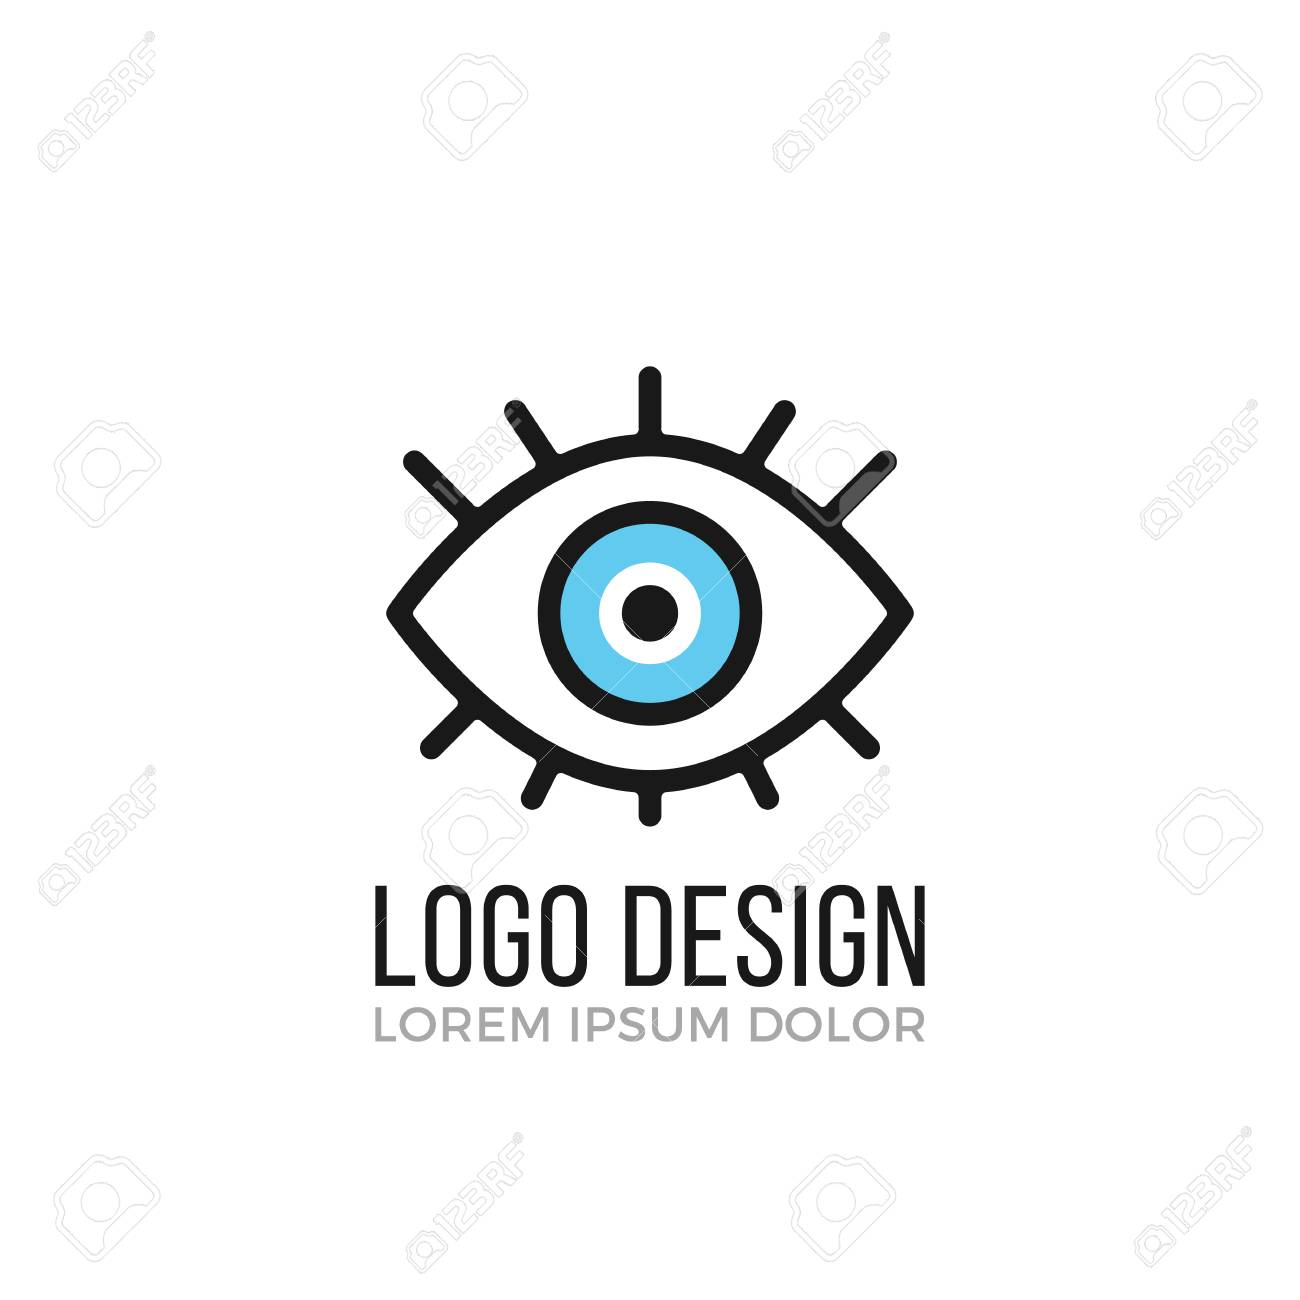 eye logo design concept eye icon vector logo royalty free cliparts